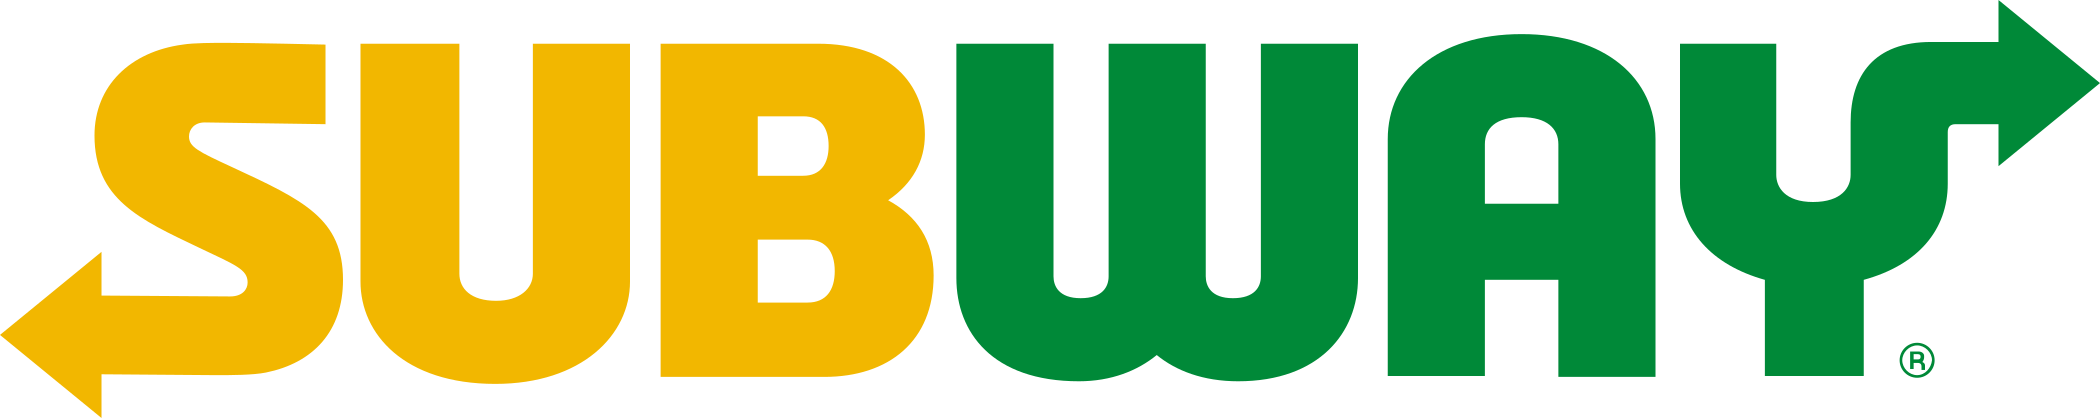 subway logo 1 - Subway Logo